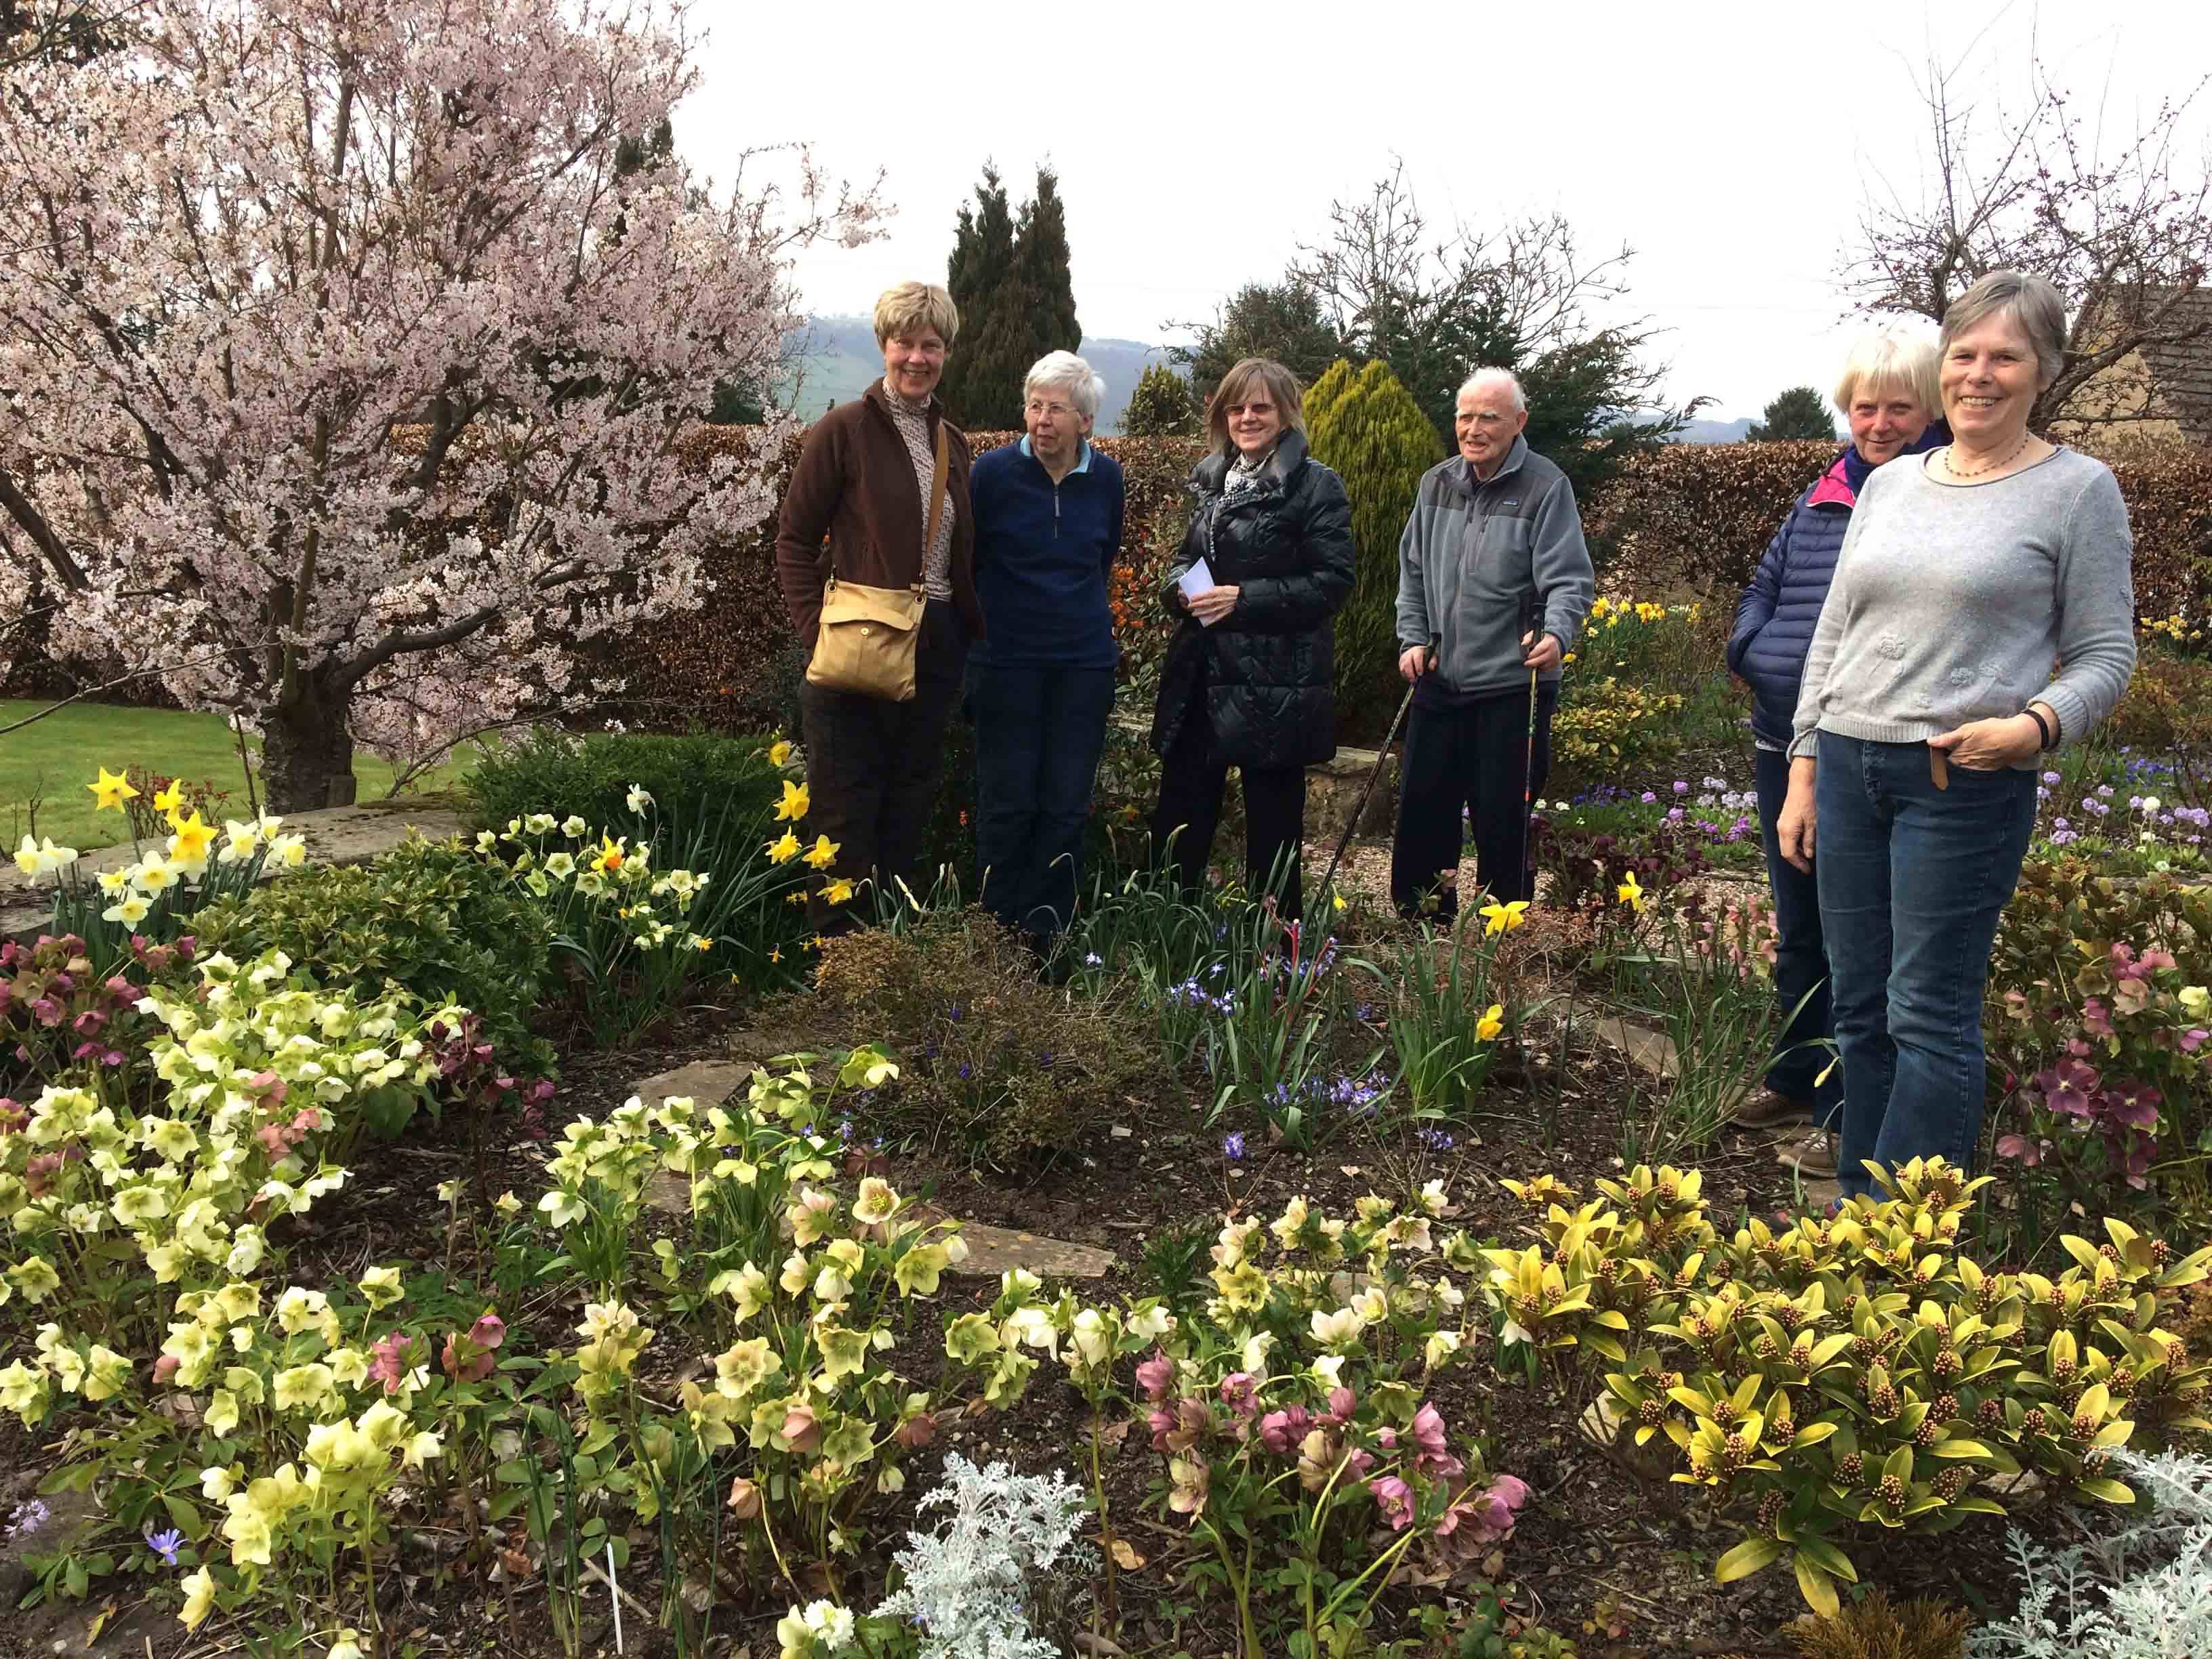 First meeting of the Gardening Group